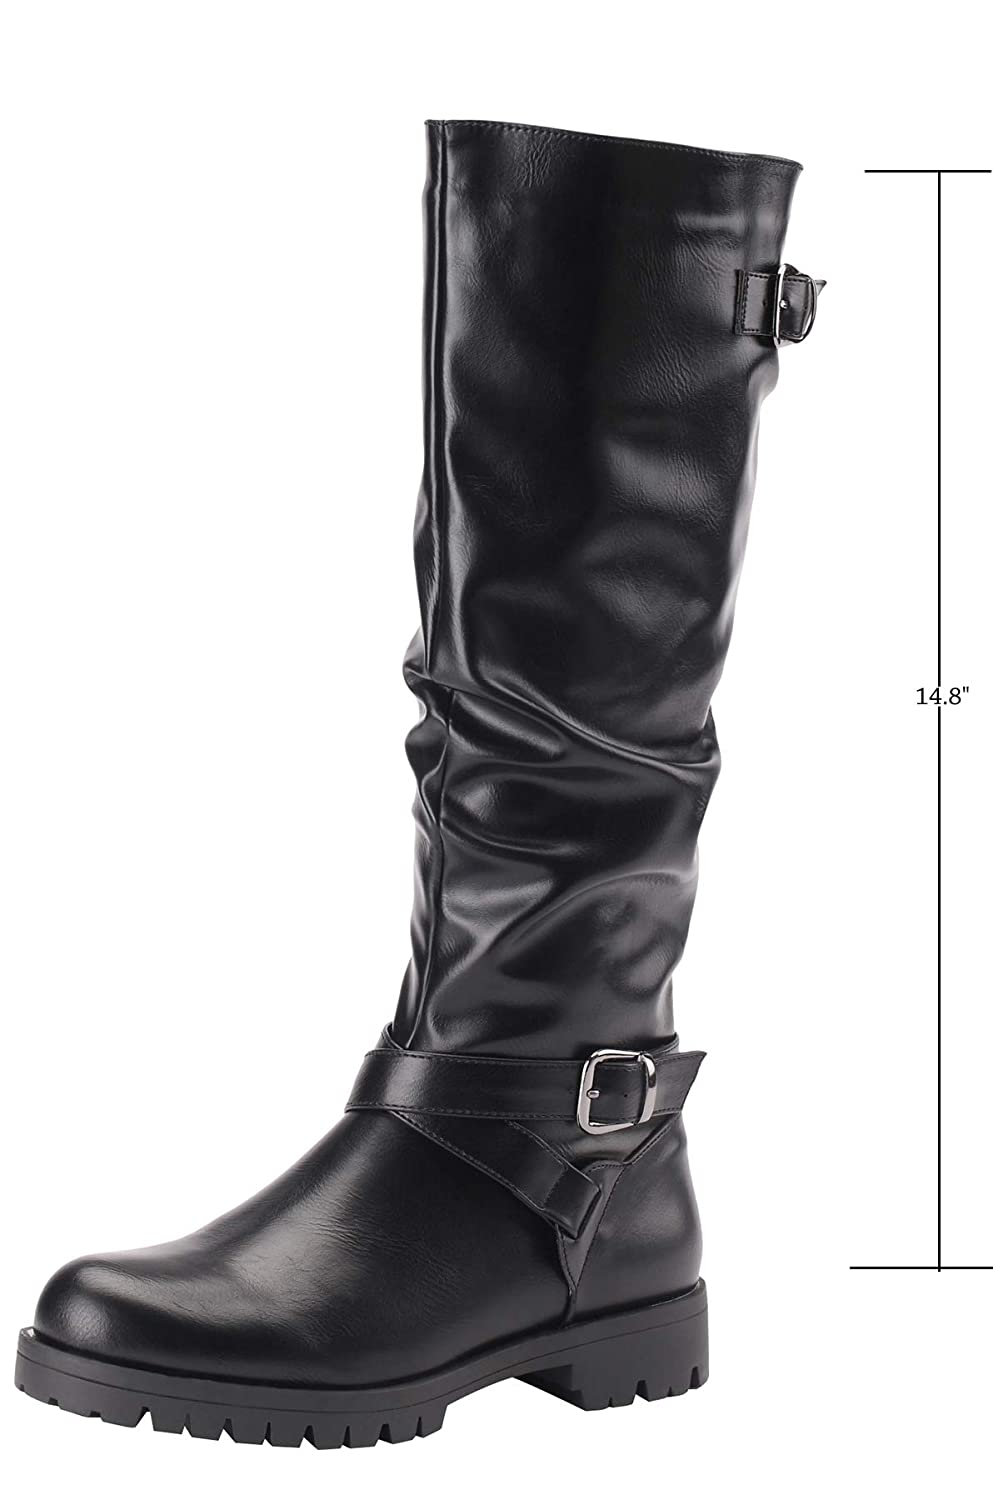 Black3 Sofree Women's Knee High Riding Boots